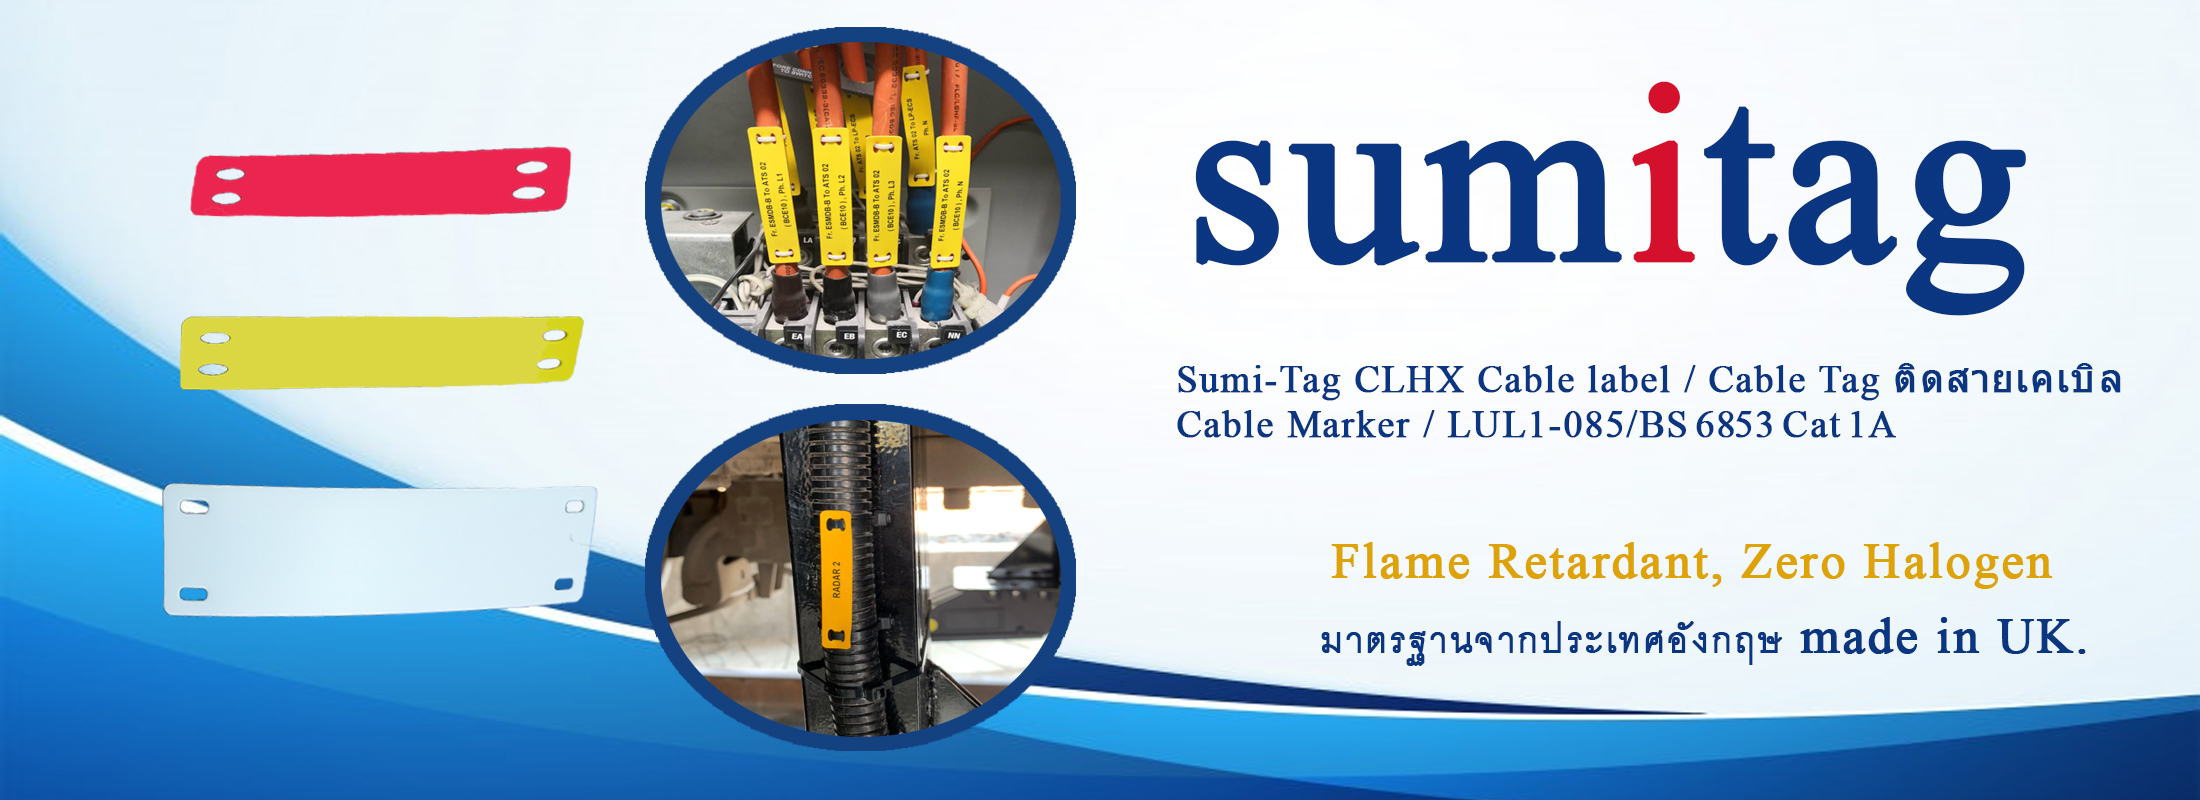 sumitag cable label banner